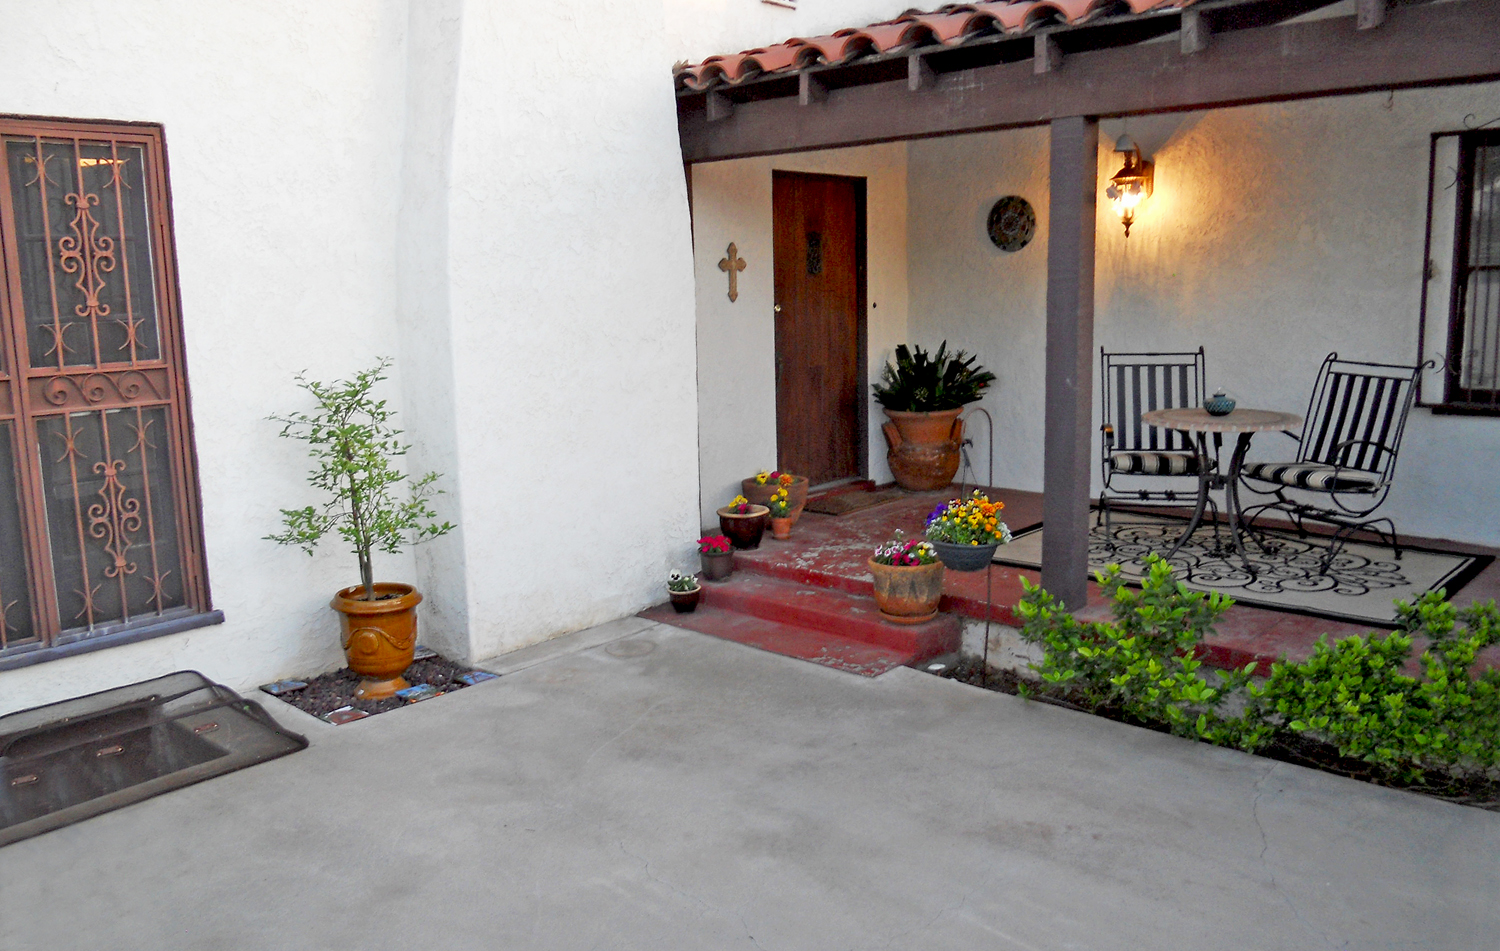 Beautiful welcoming courtyard with covered porch.  Great place to gather and watch the front-row view of the Mt. Rubidoux fireworks every year on the 4th of July!